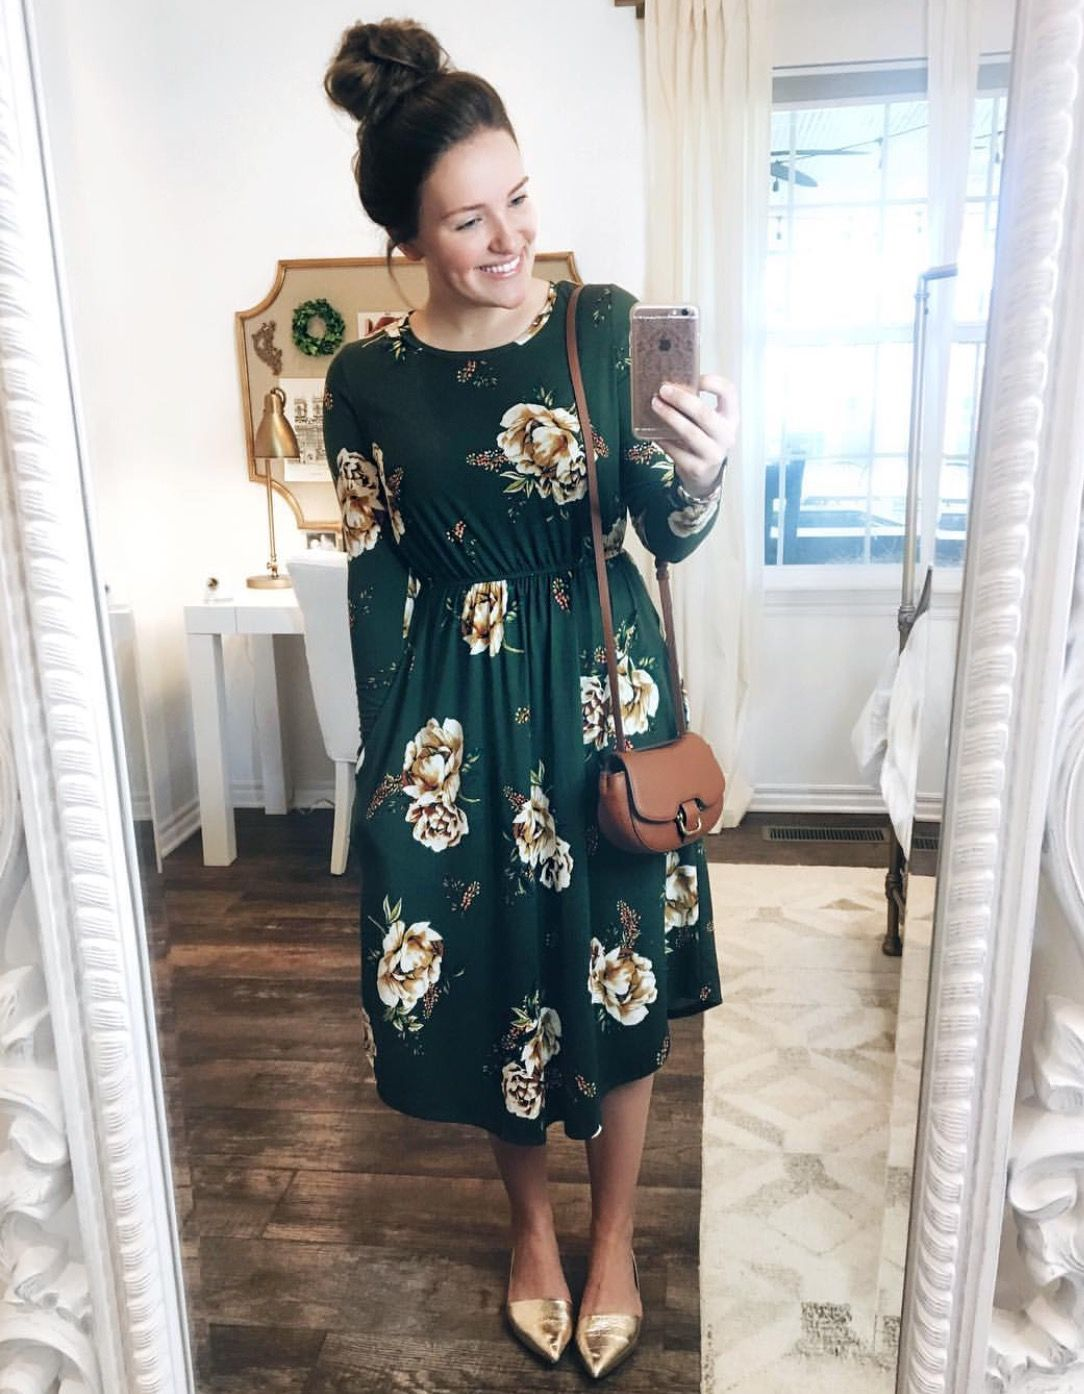 339a178f0cd4 25 Amazing Boho-Chic Style Inspirations and Outfit Ideas ...